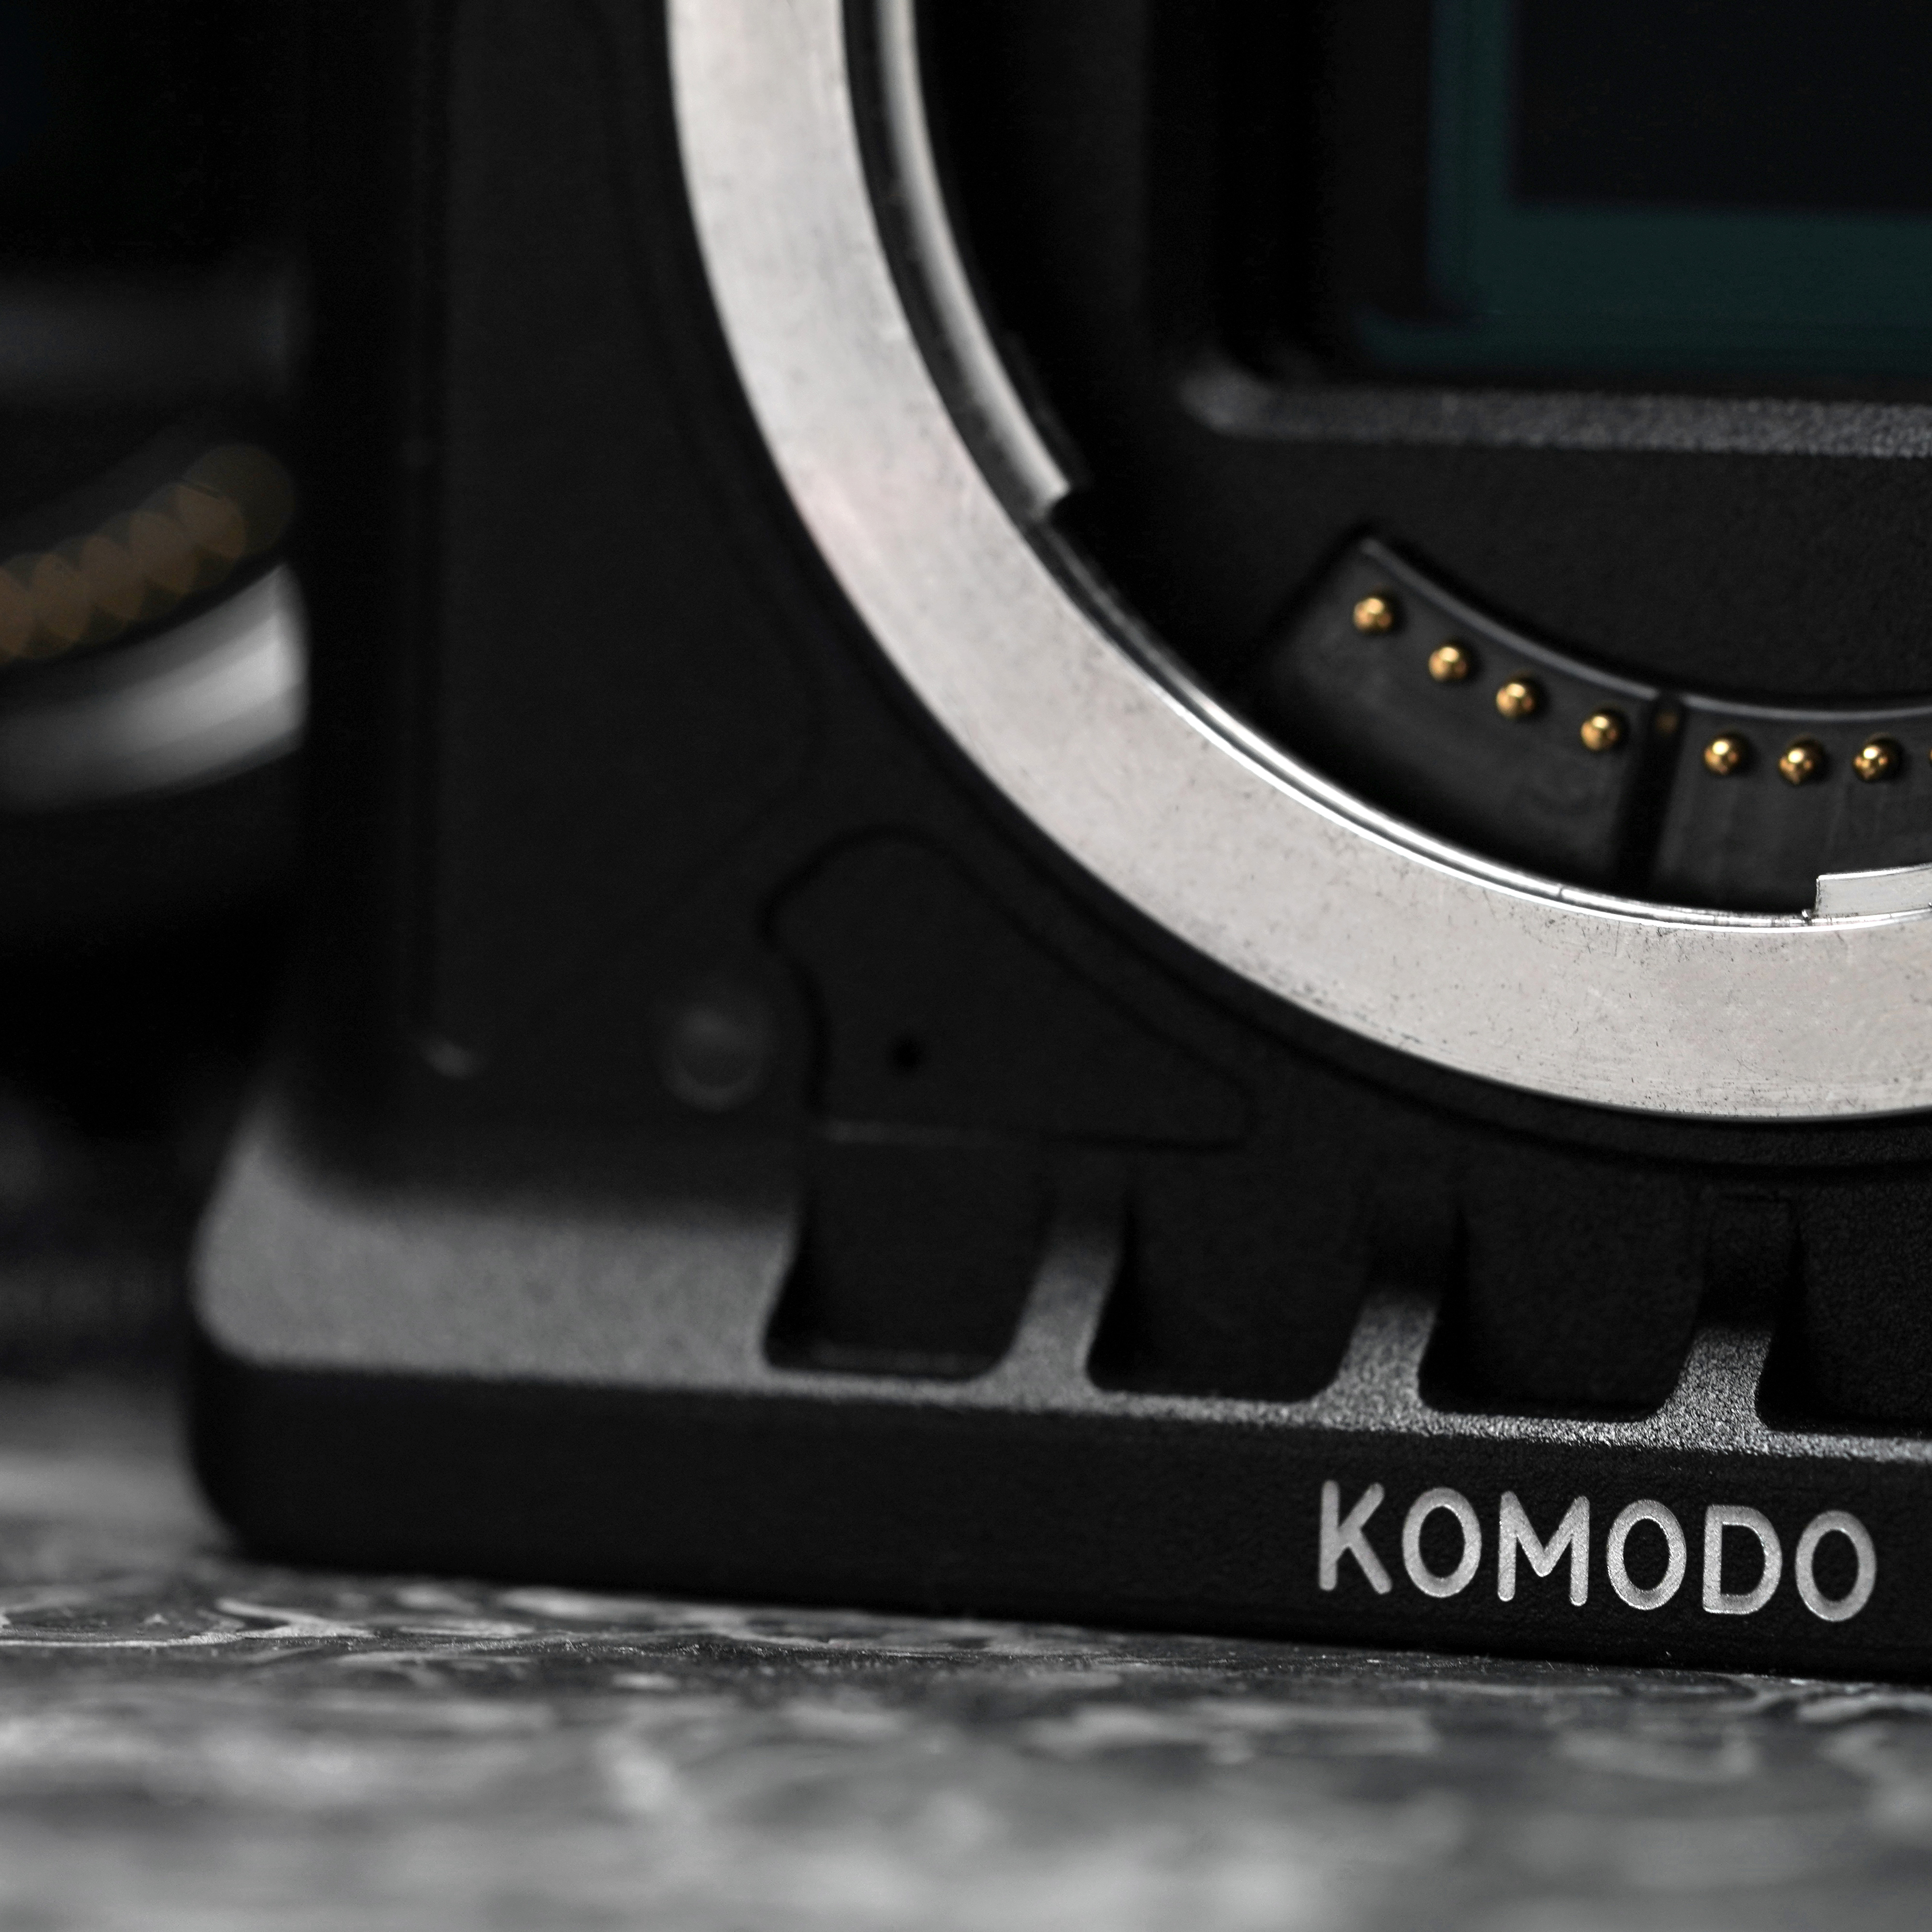 RED teasert Komodo: is a RED Cine compact camera coming?